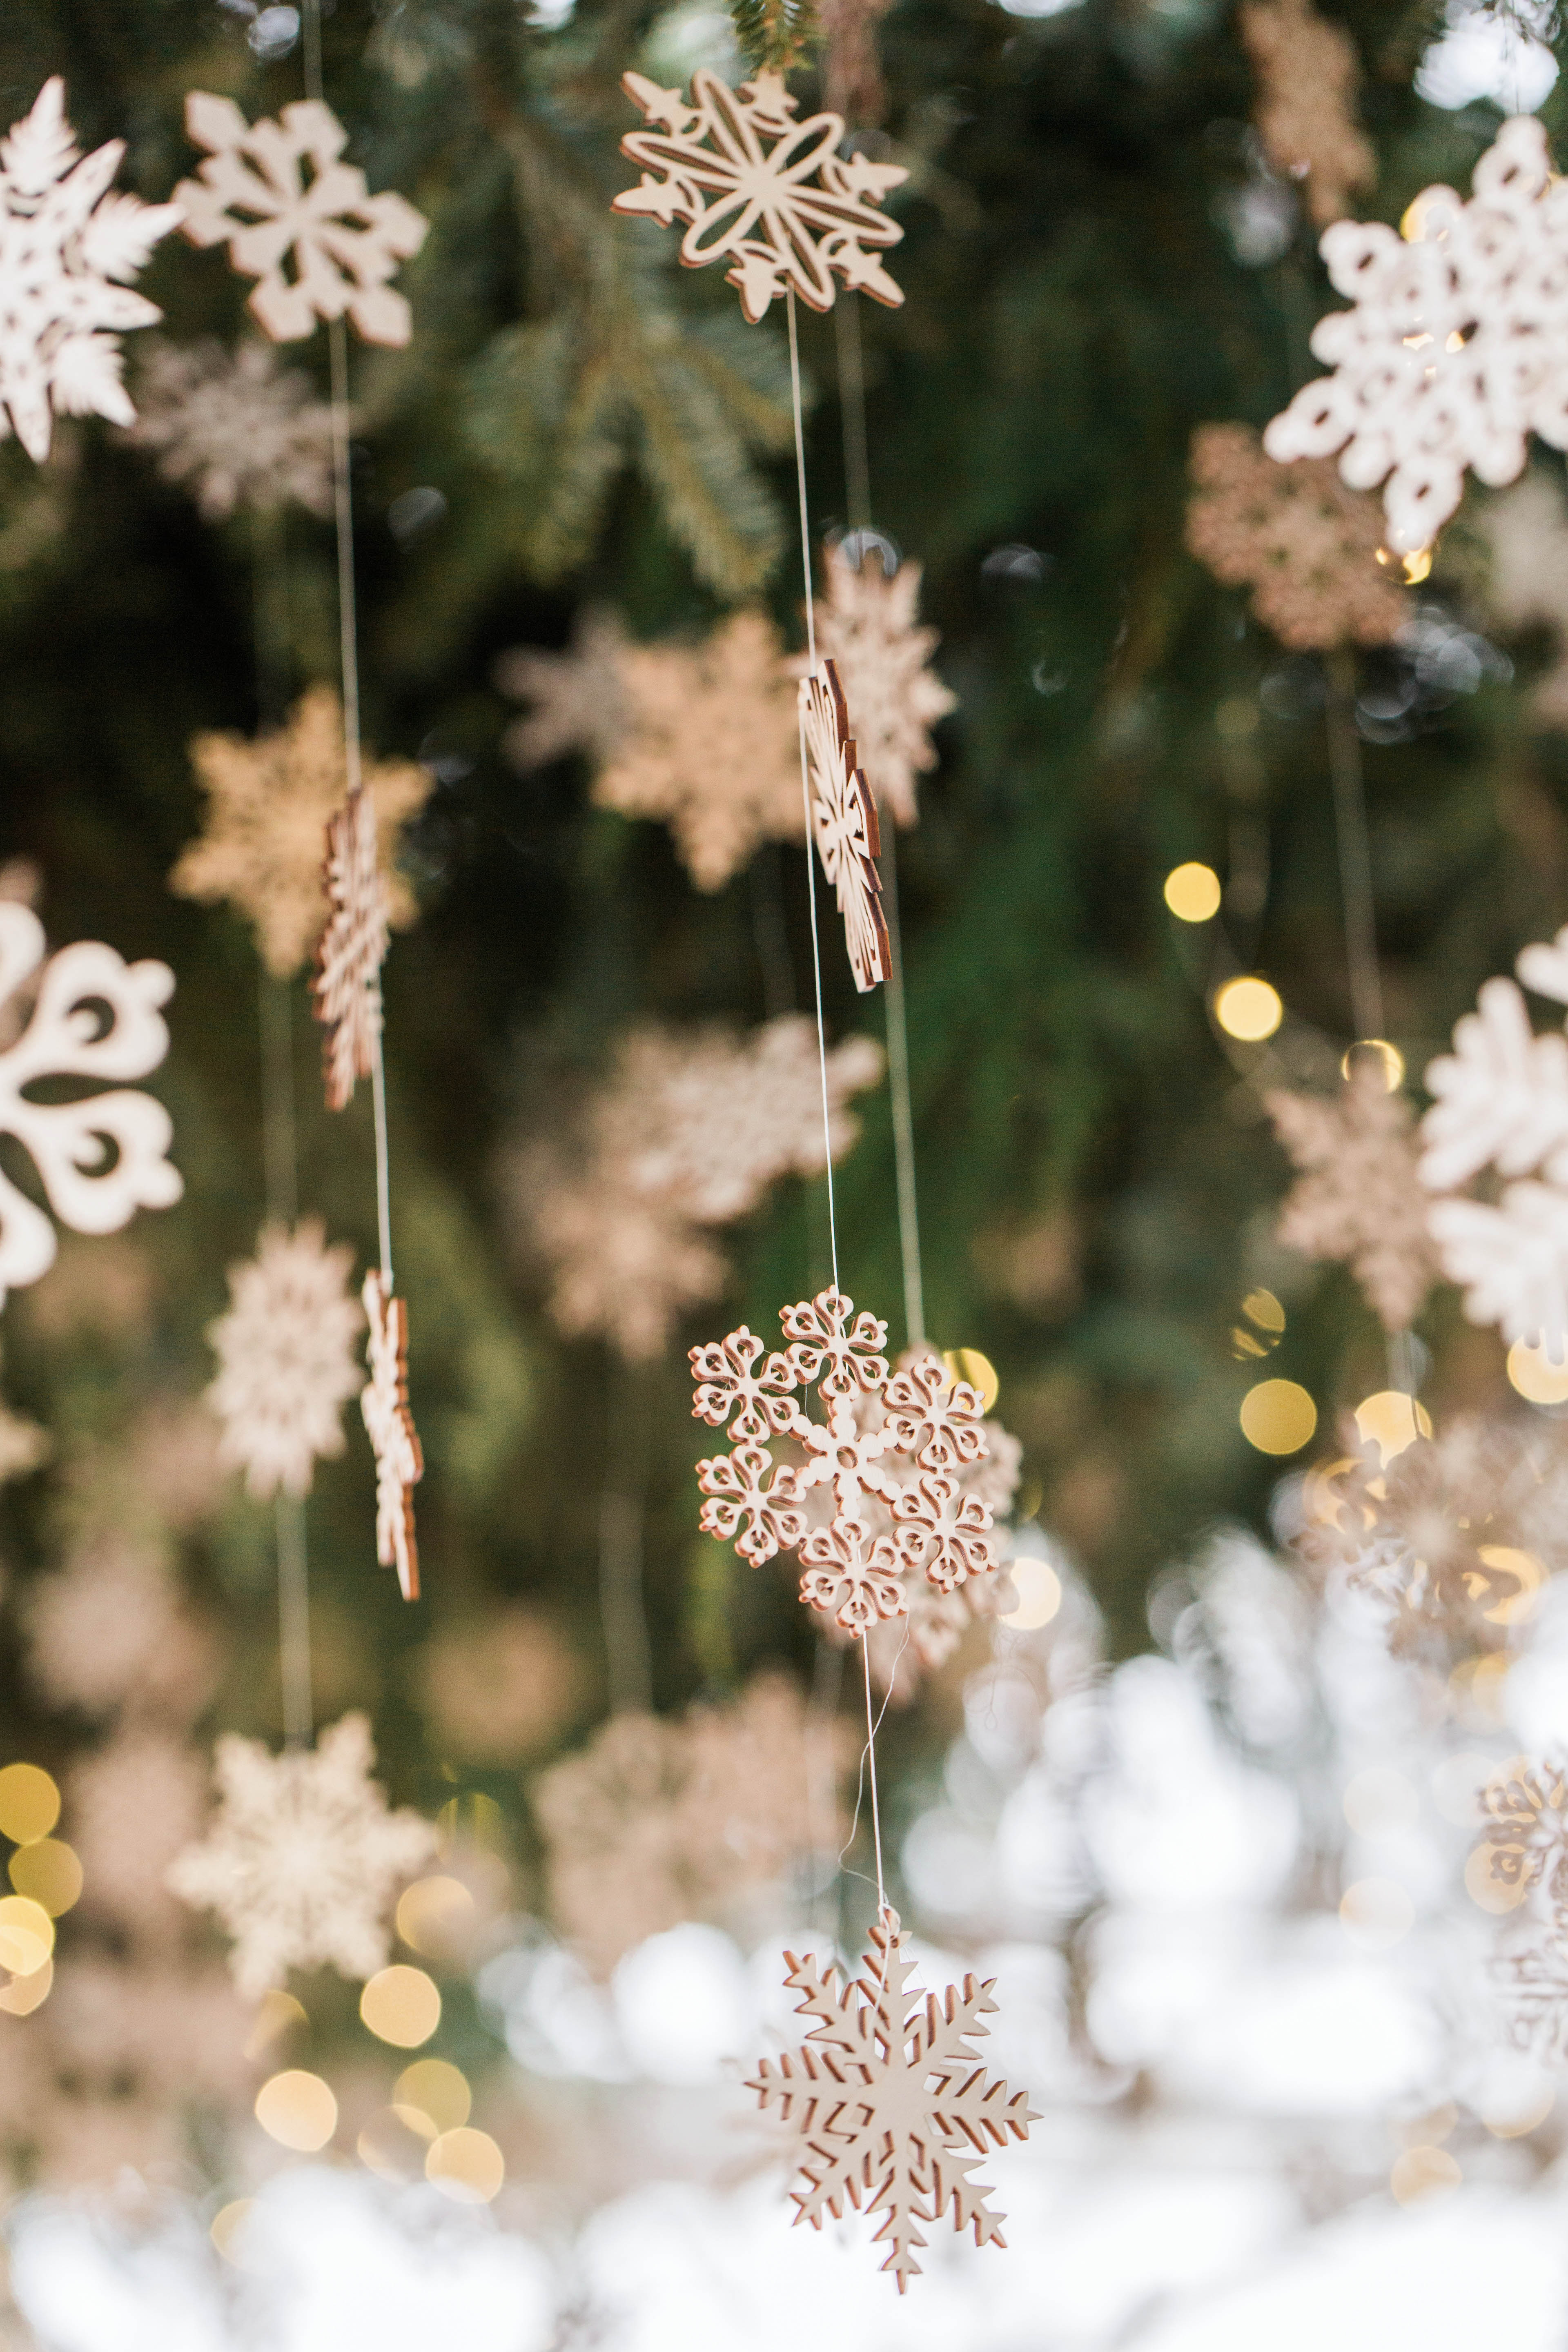 Expert-Approved Tips for Navigating Your First Holiday Season as an Engaged Couple